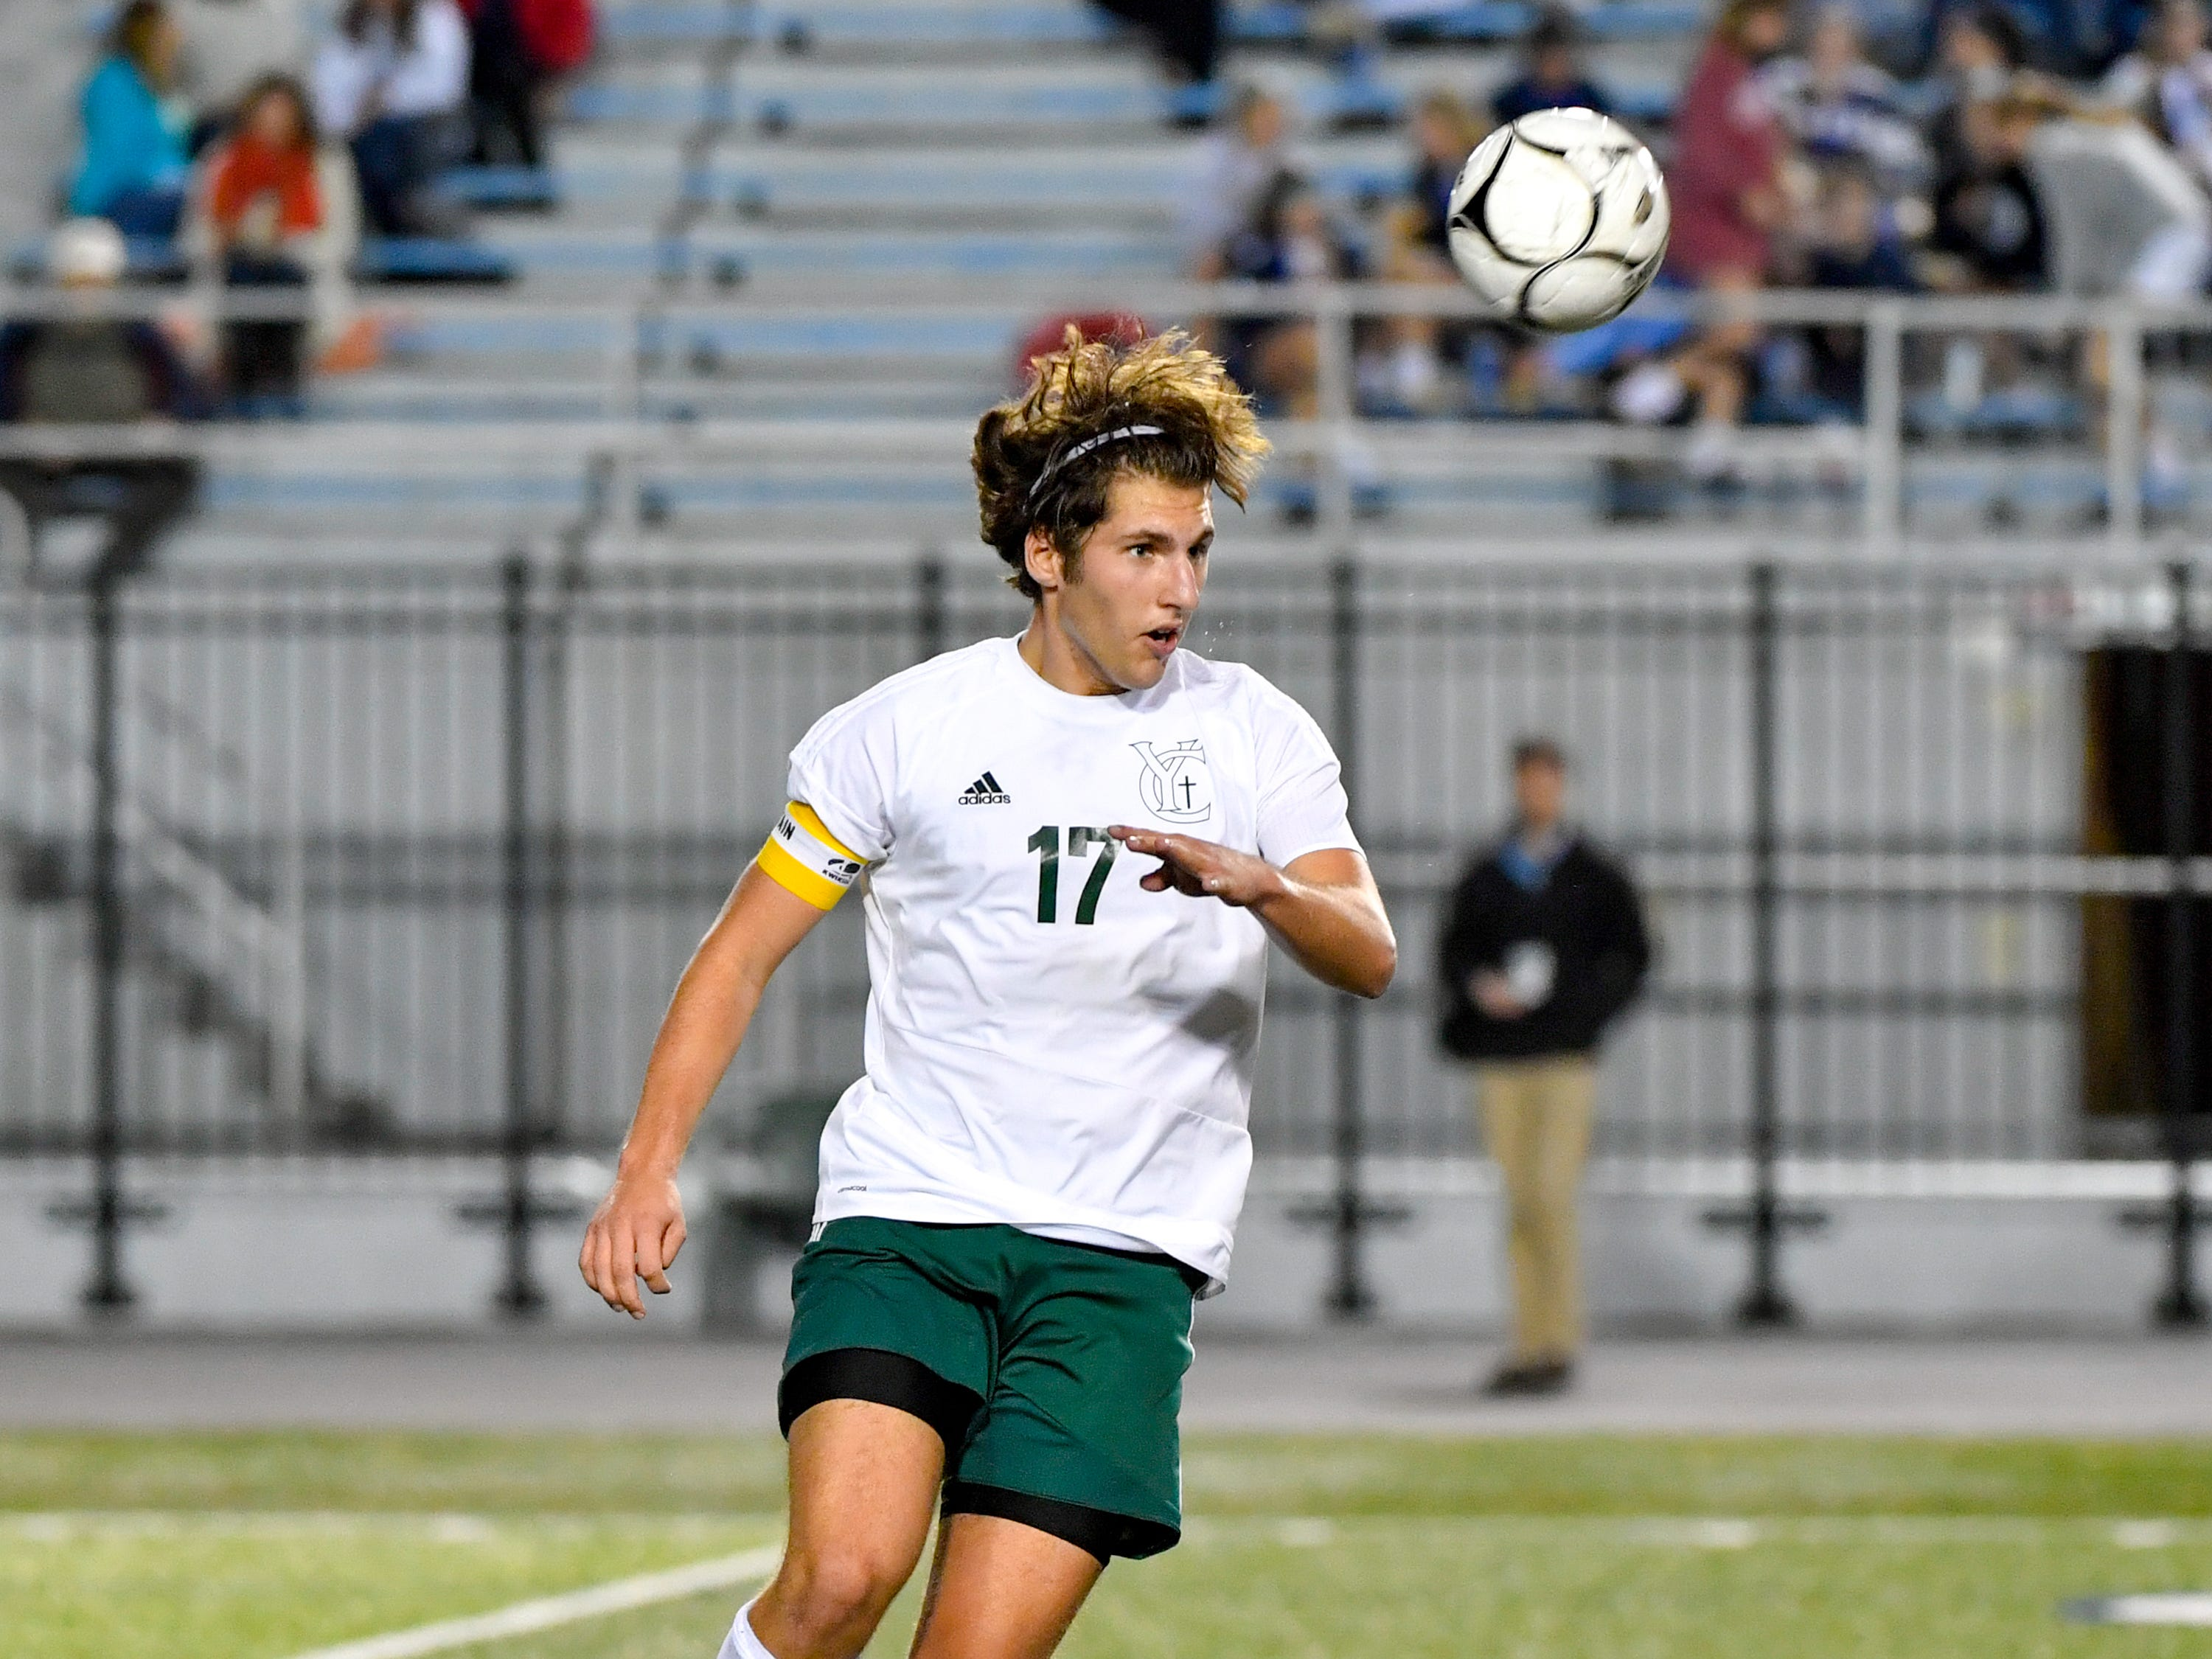 York Catholic boys' soccer falls to Camp Hill in District 3 title game